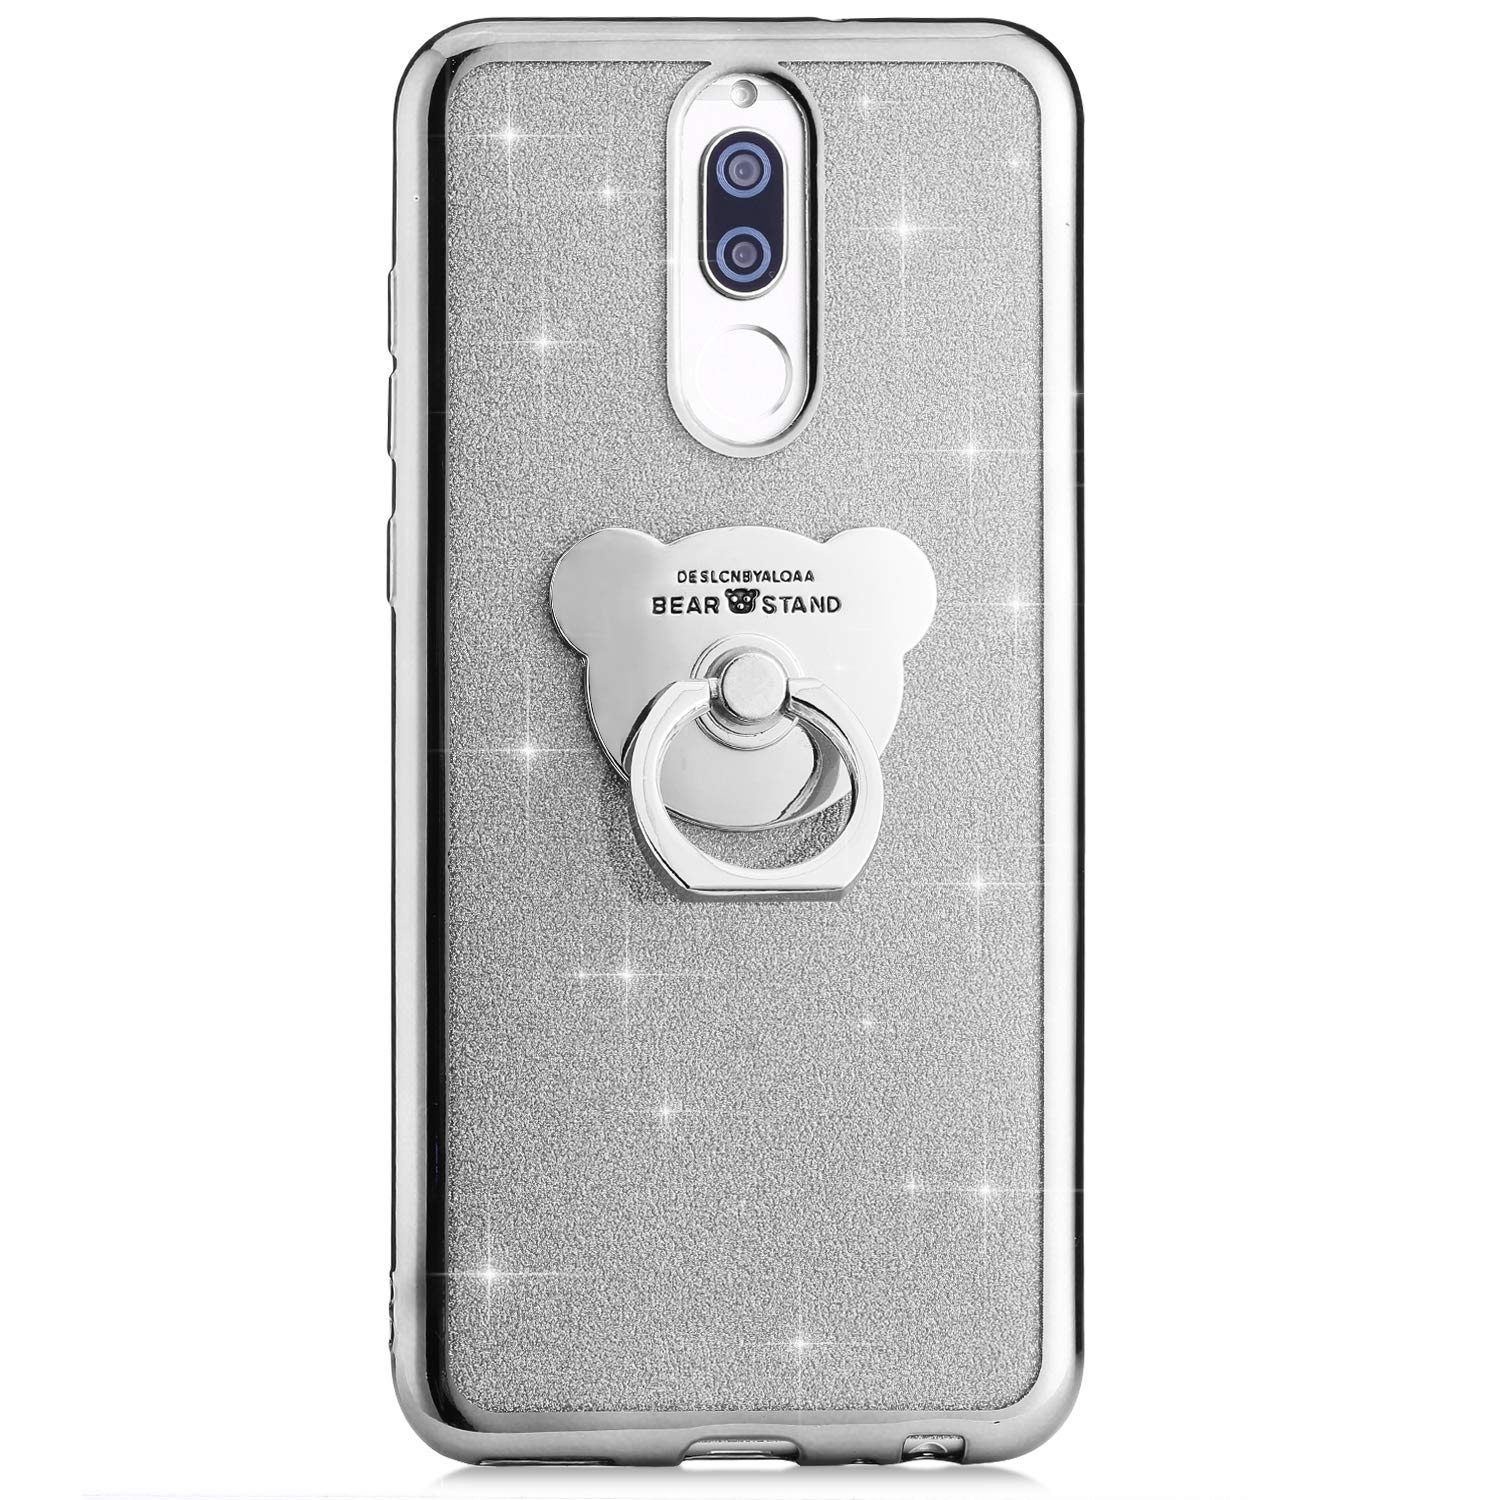 Compatible with Huawei Mate 20 Pro Case,PHEZEN Girls Bling Glitter Sparkle TPU Case with 360 Ring Stand Holder,Chrome Soft Silicone Rubber Bumper Protective Case for Huawei Mate 20 Pro Rose Gold